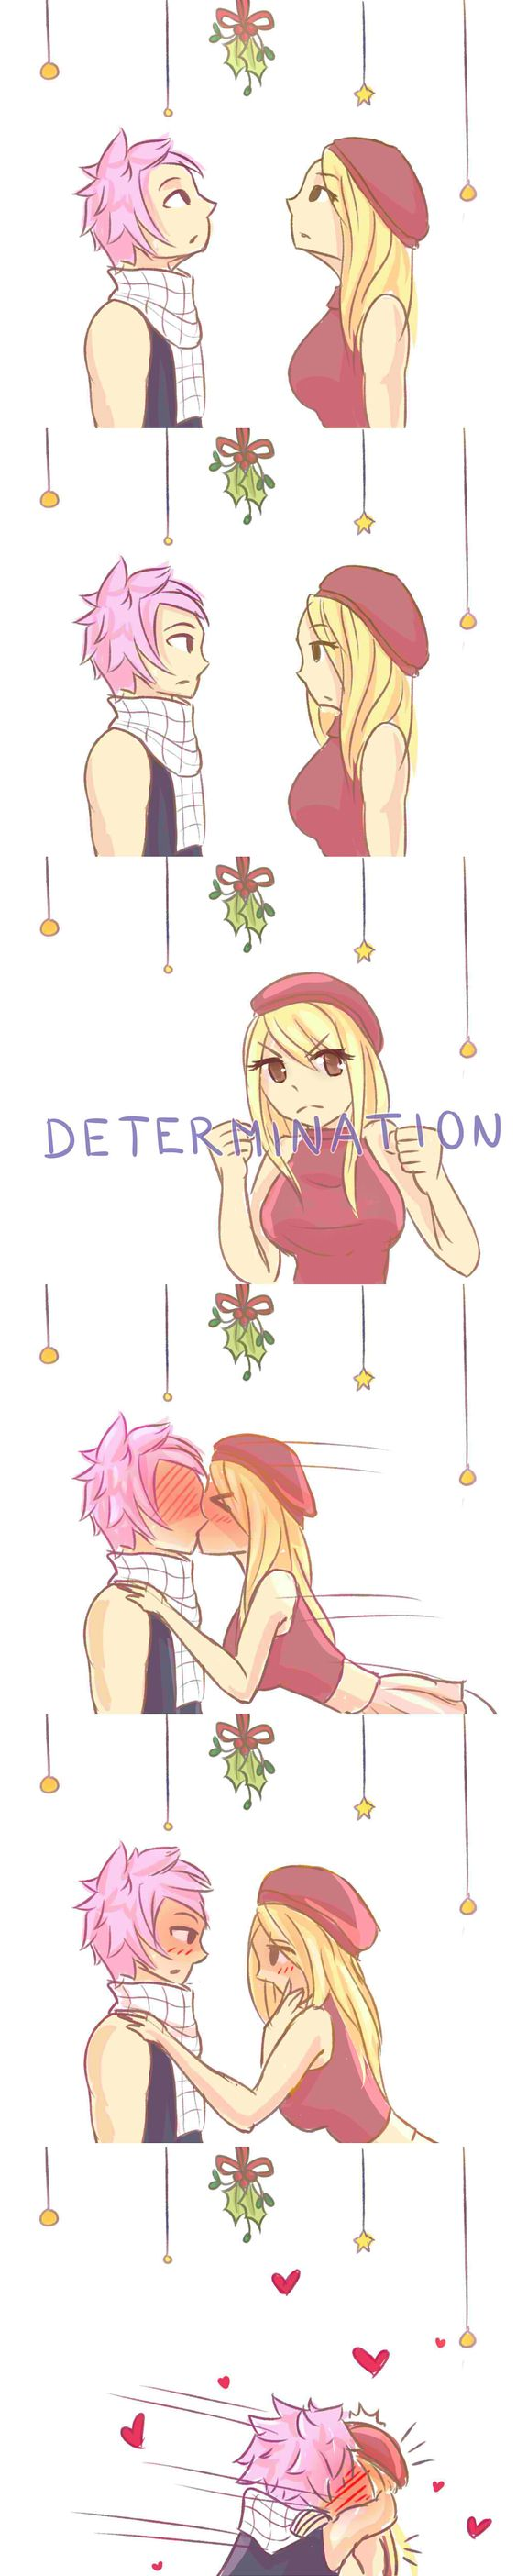 Under the Mistletoe by hazu-i on DeviantArt